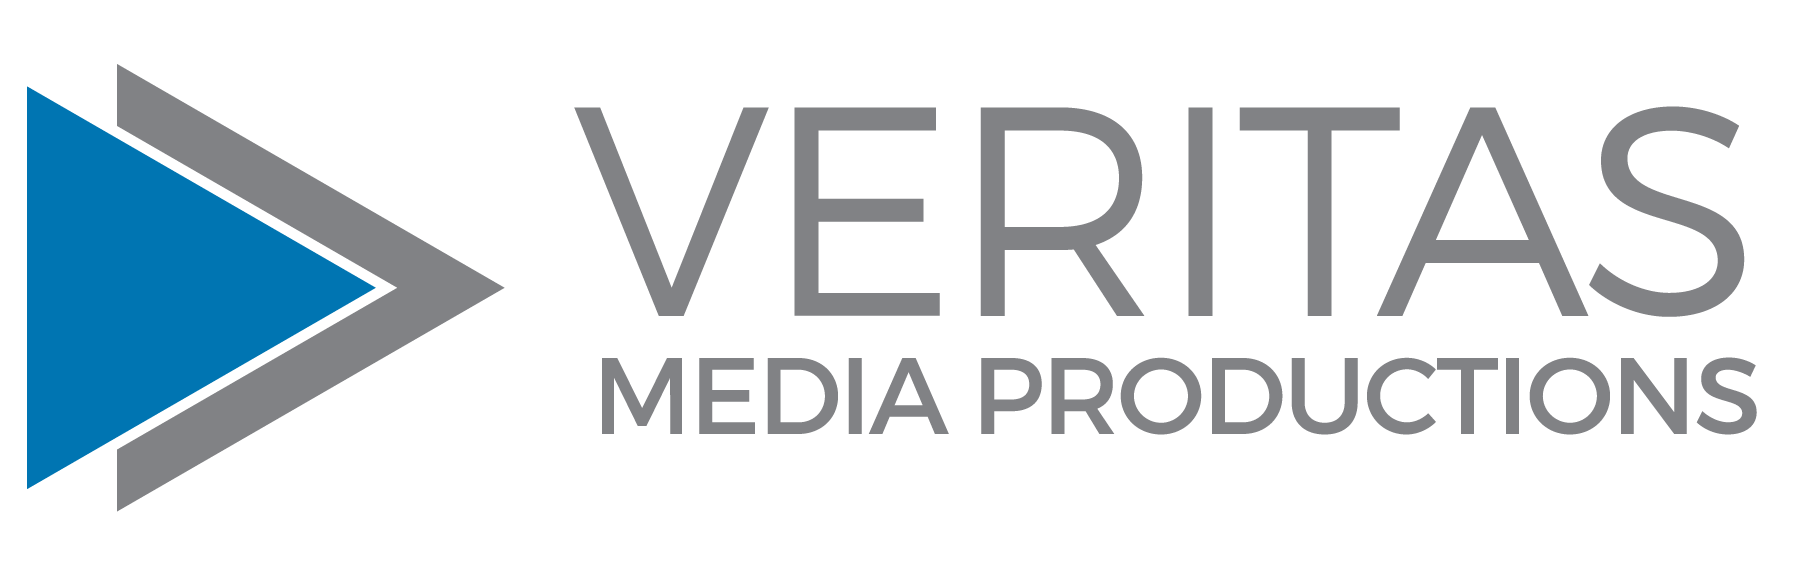 Veritas Media Productions – Chairman